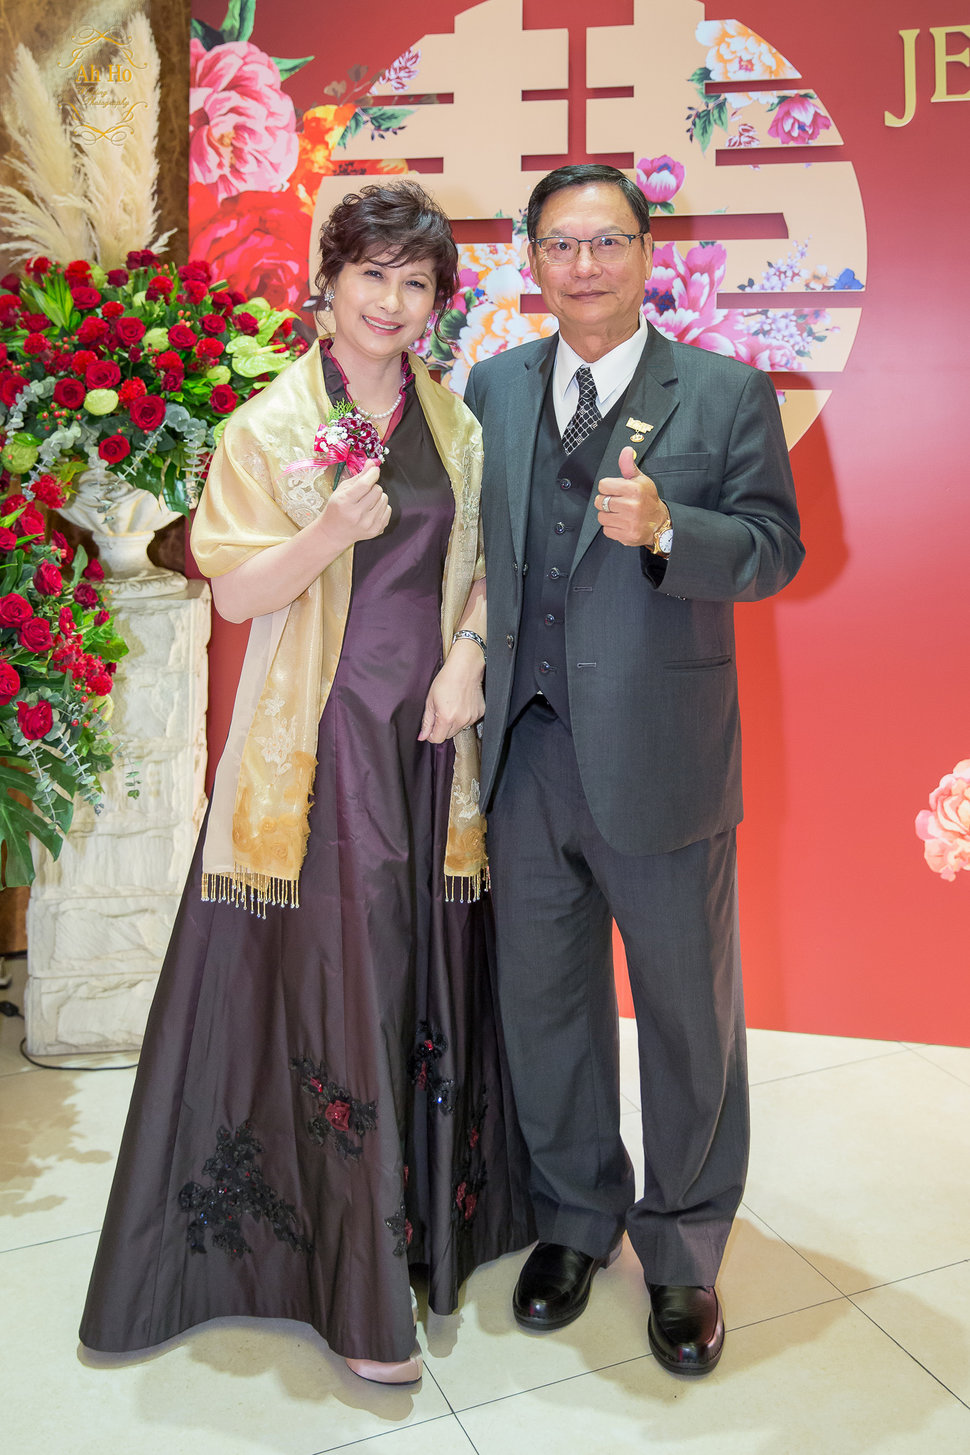 AhHo Wedding TEL-0937797161 lineID-chiupeiho (37 - 271) - AhHoWedding/阿河婚攝《結婚吧》